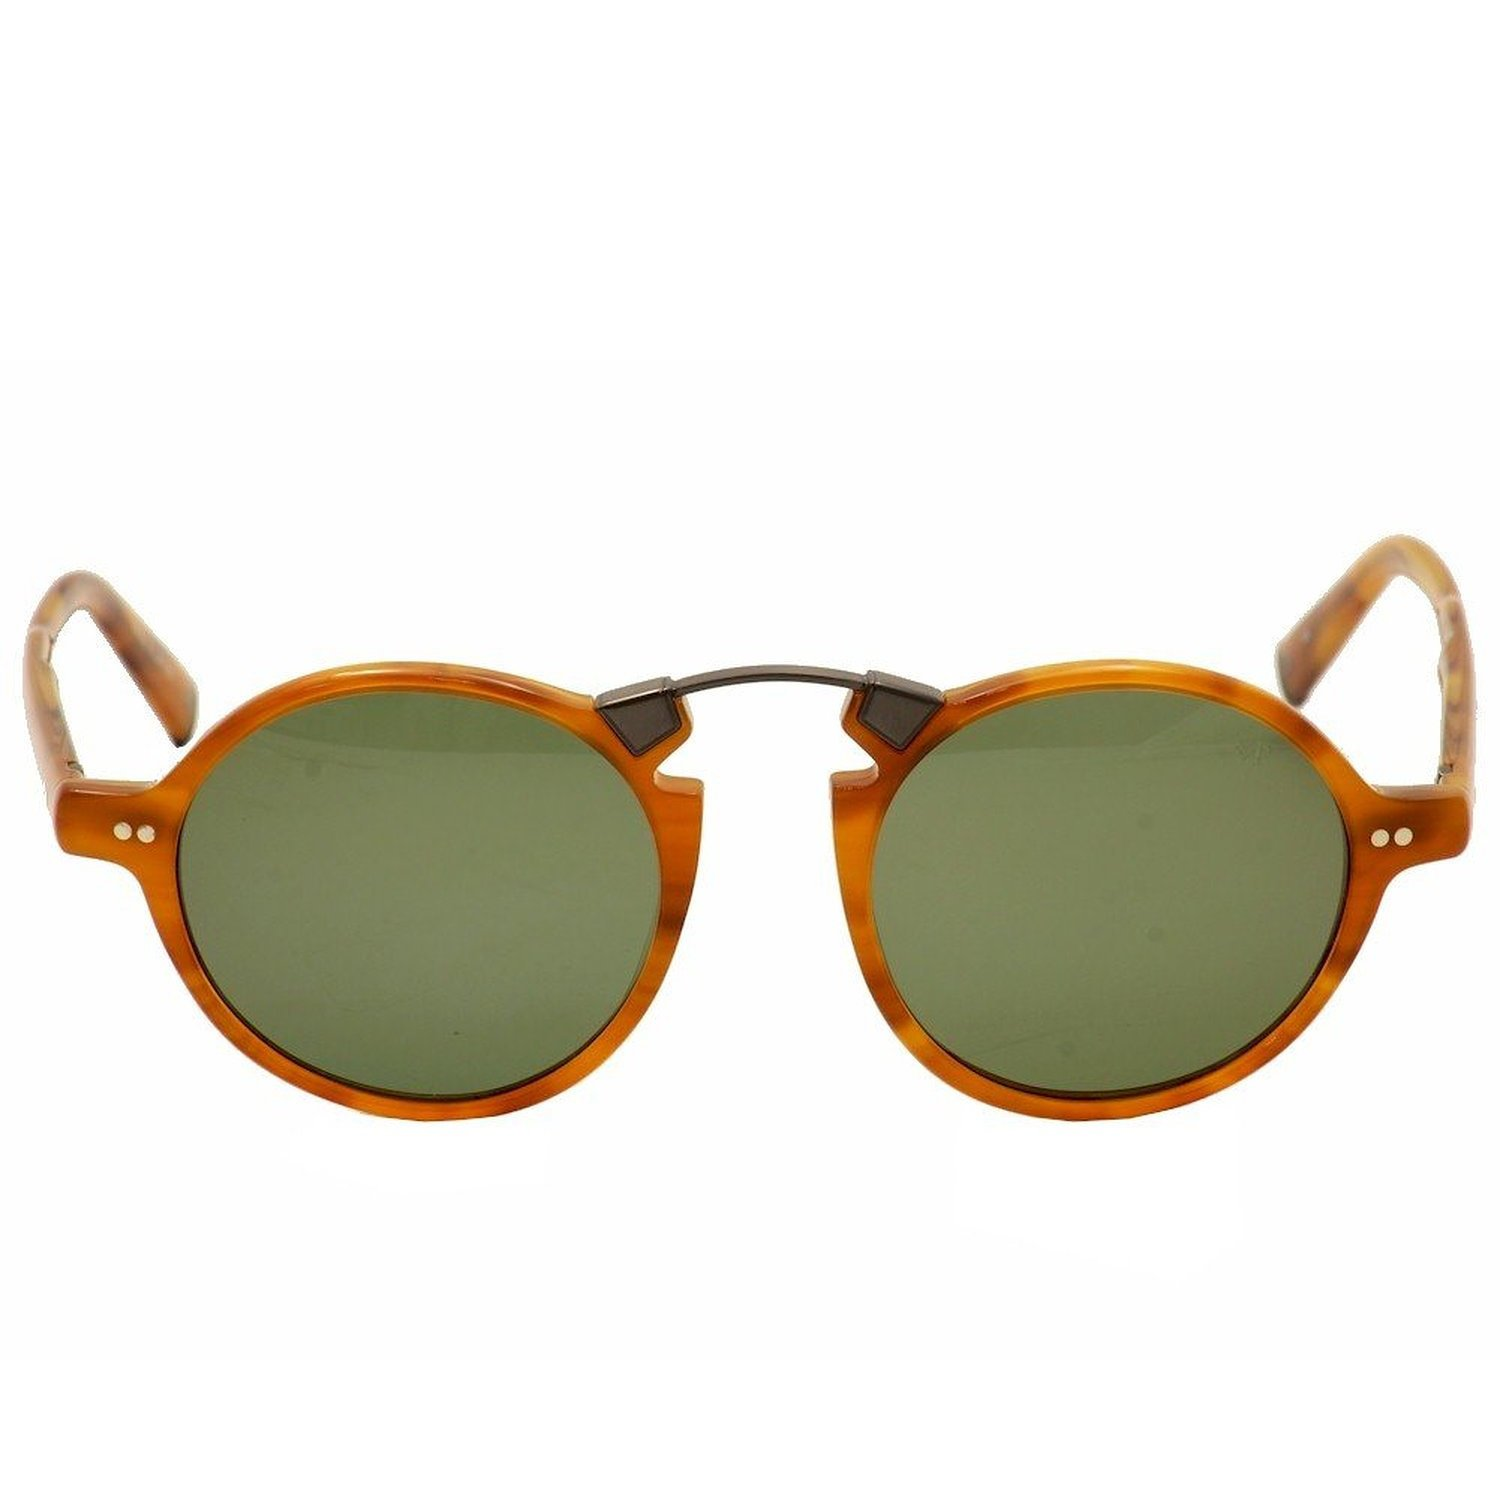 John Varvatos Crosby Polarized Sunglasses - Butterscotch